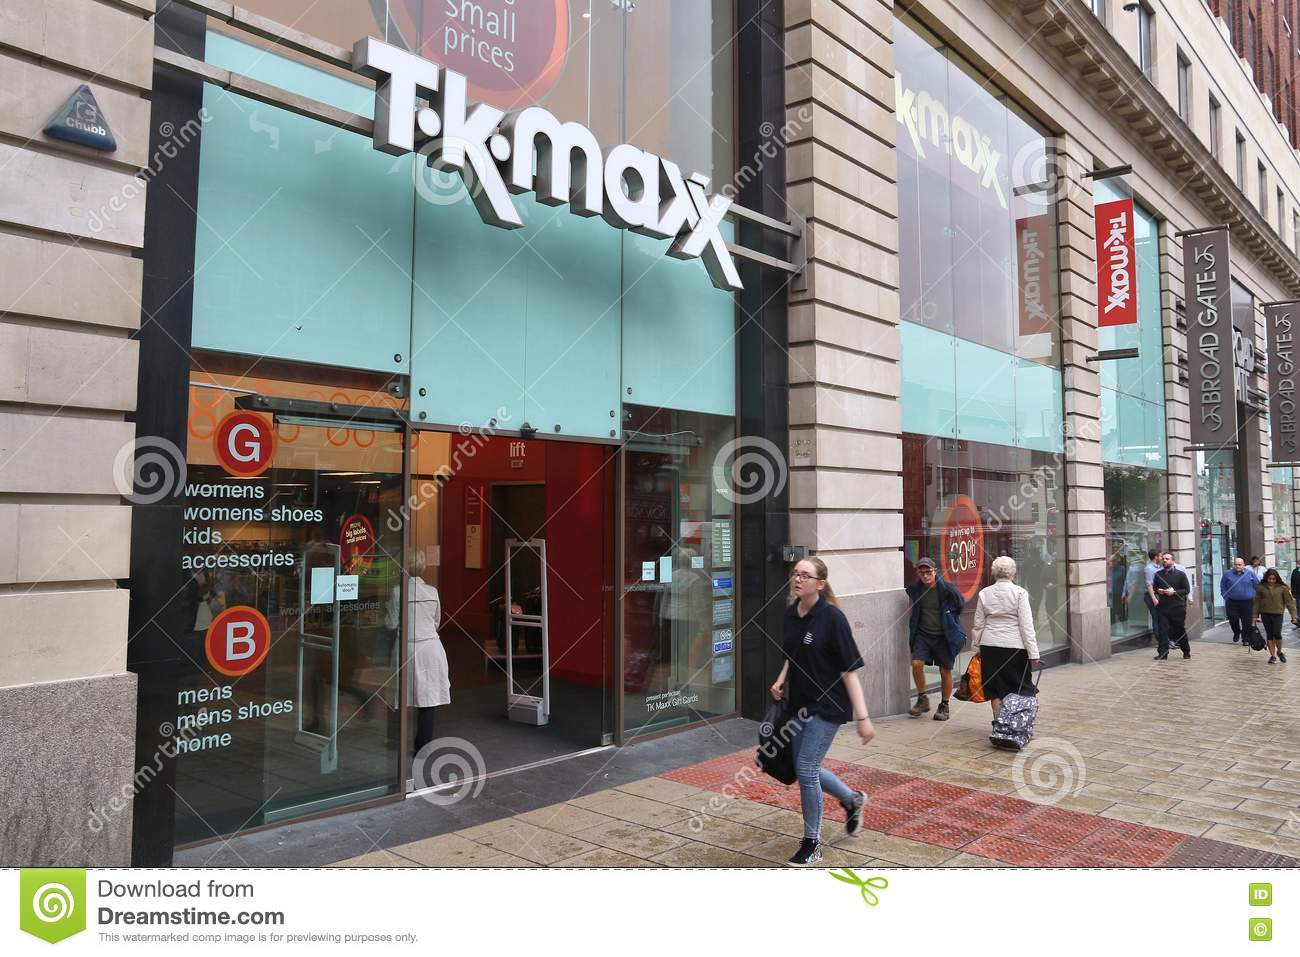 Photo of TK Maxx - Rotterdam, Zuid-Holland, The Netherlands by Heiko T. Photo of TK Maxx - Rotterdam, Zuid-Holland, The Netherlands by Heiko T. See all 11 photos Recommended Reviews for TK Maxx. Your trust is our top concern, so businesses can't pay to alter or remove their reviews. Learn more. × 4/4(5).